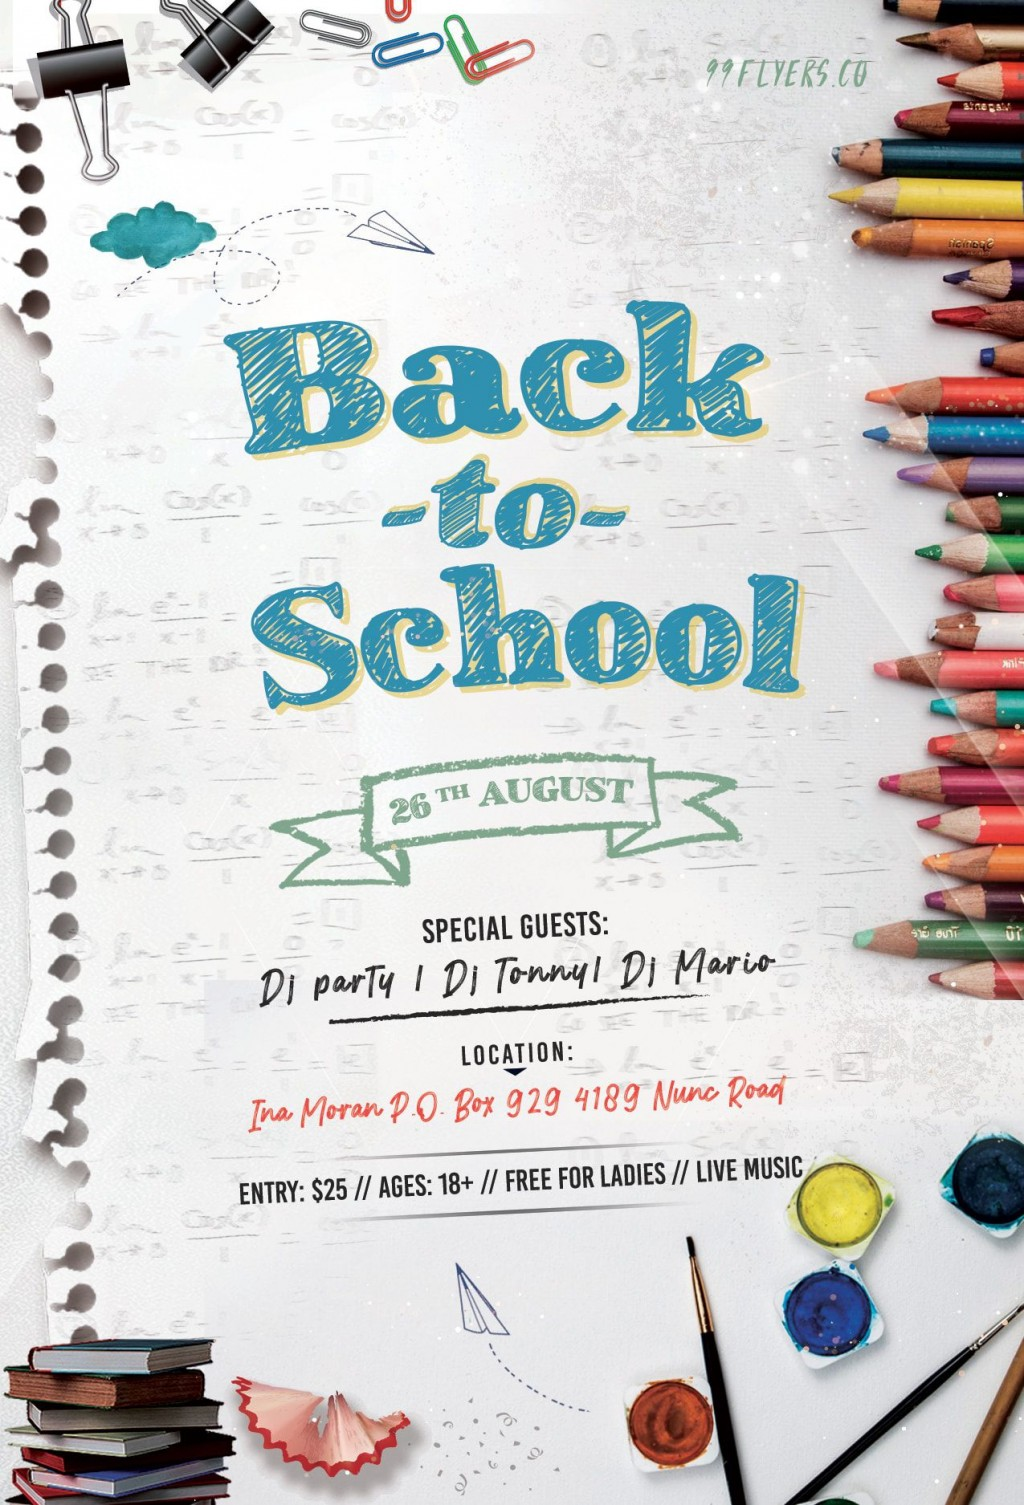 003 Imposing Free School Flyer Template High Definition  Templates Vacation Bible For Microsoft Word EventLarge